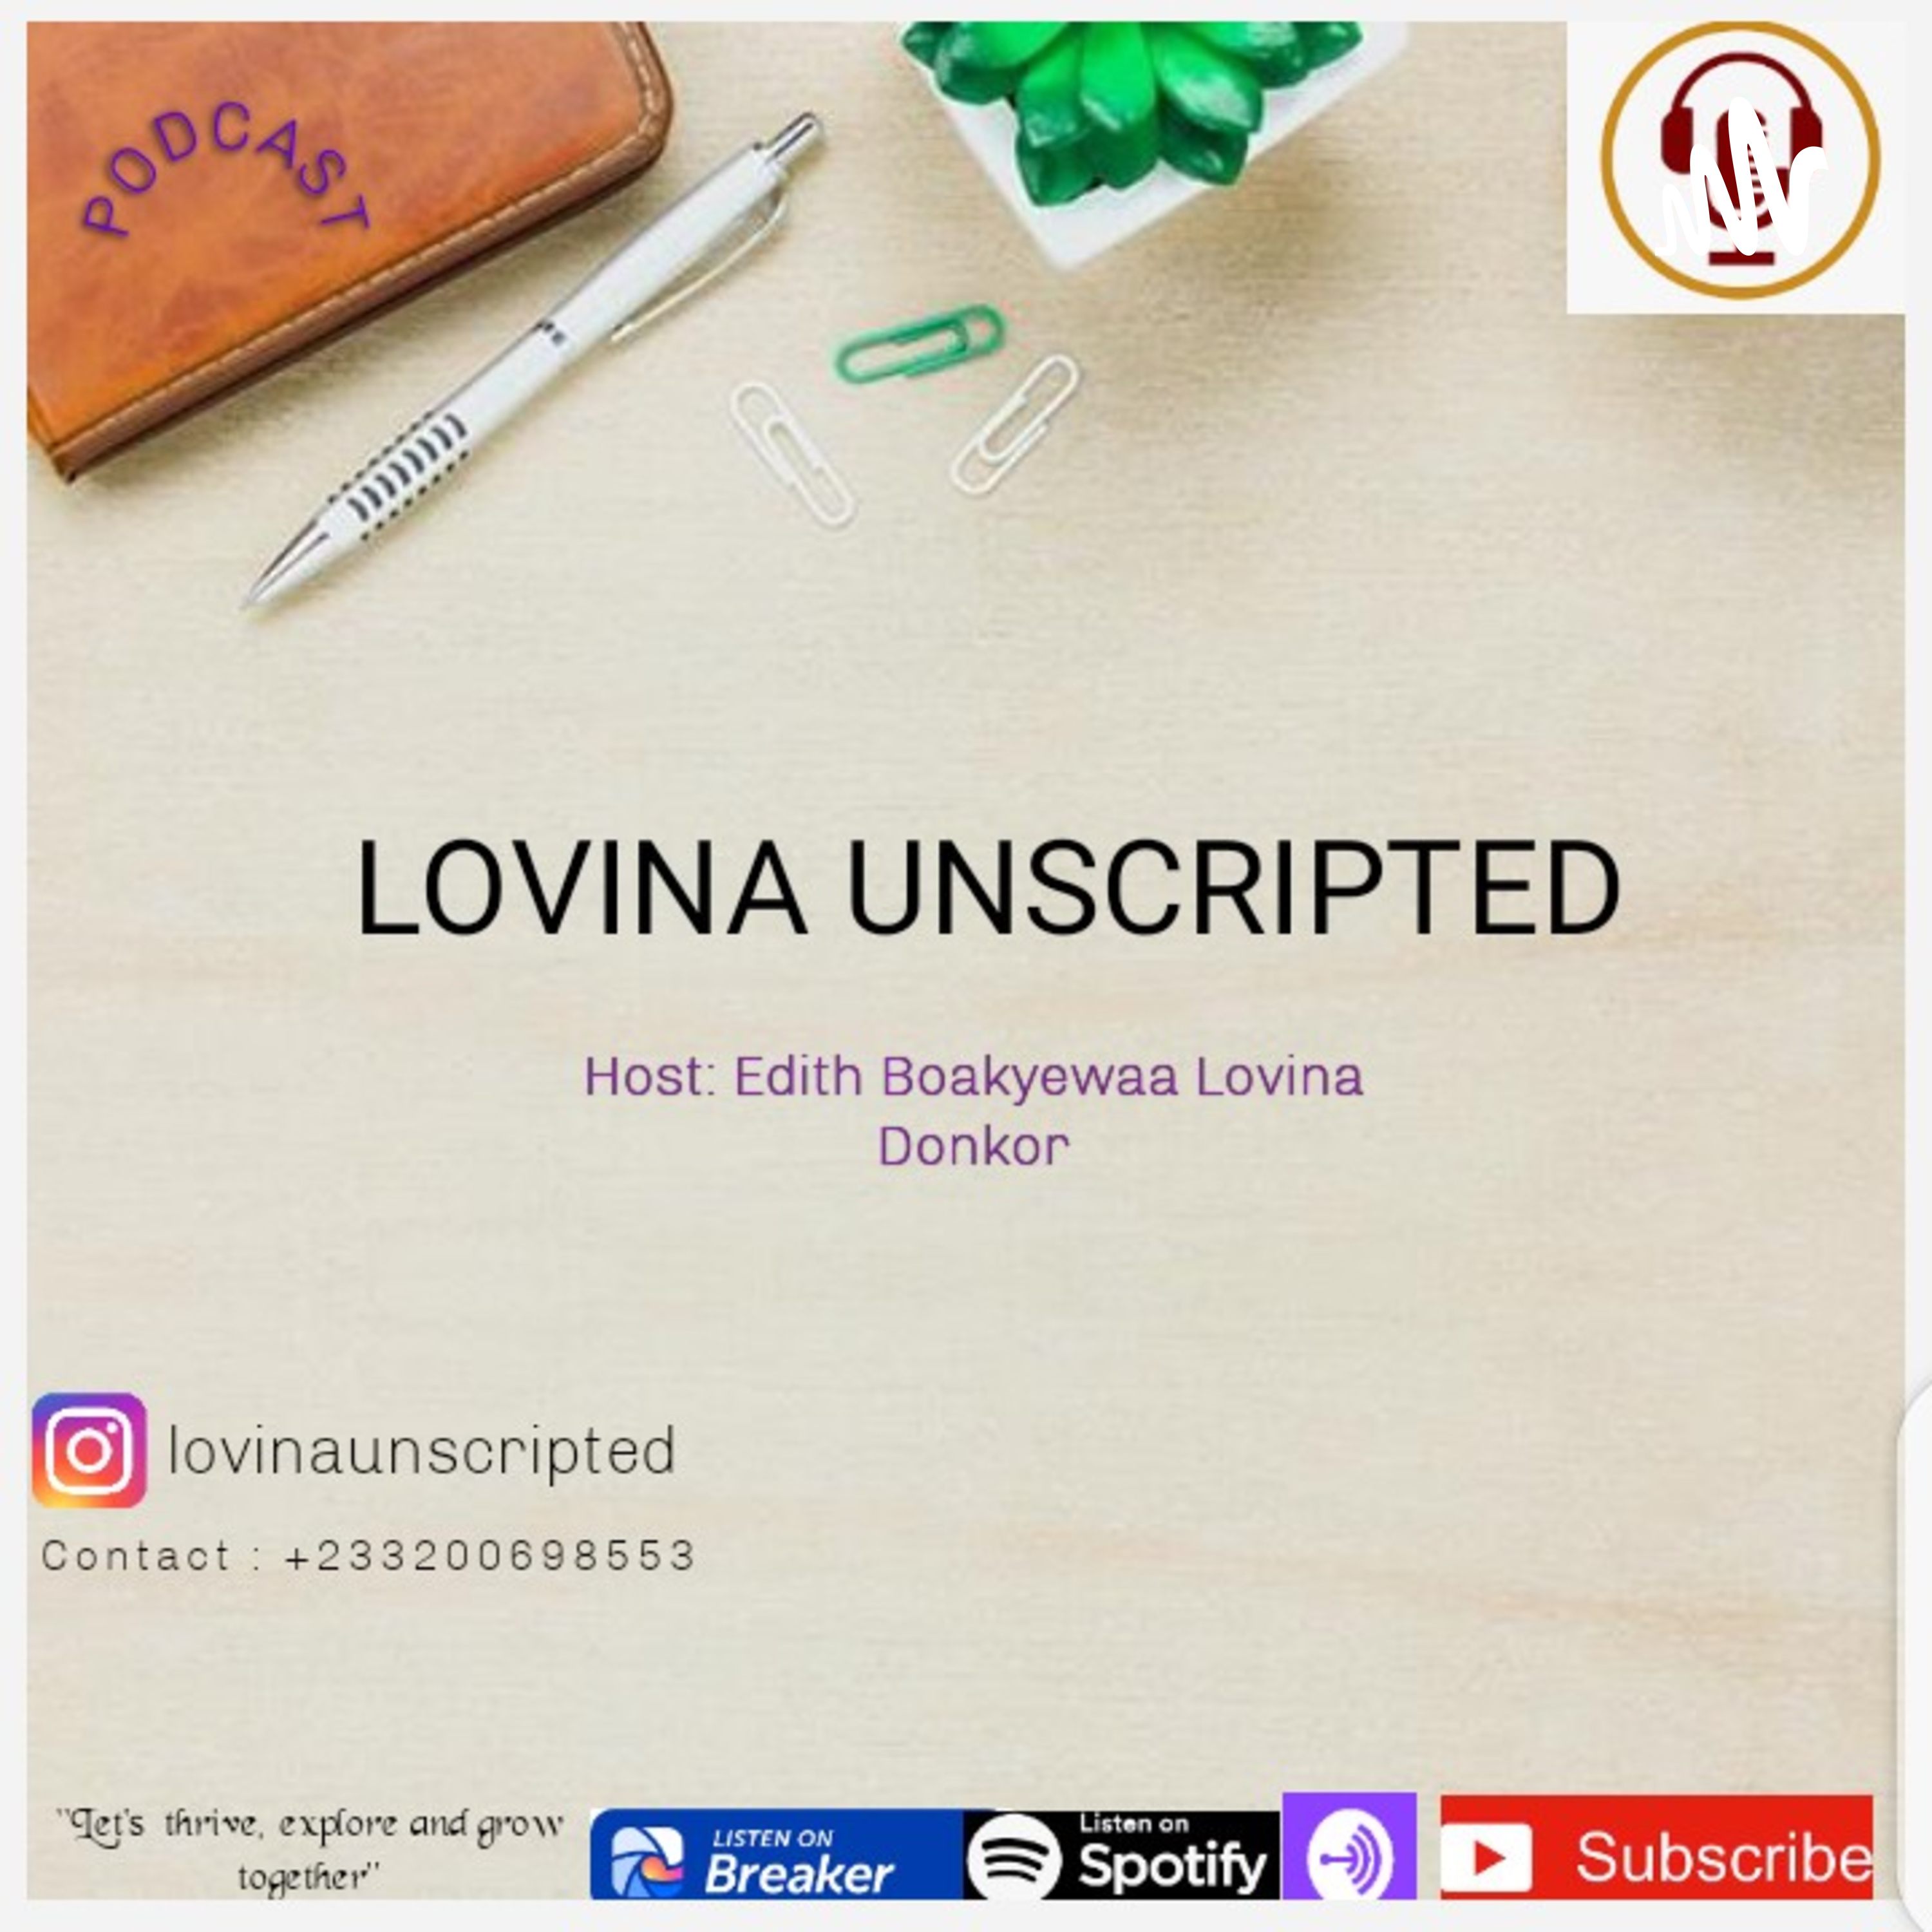 Lovina Unscripted